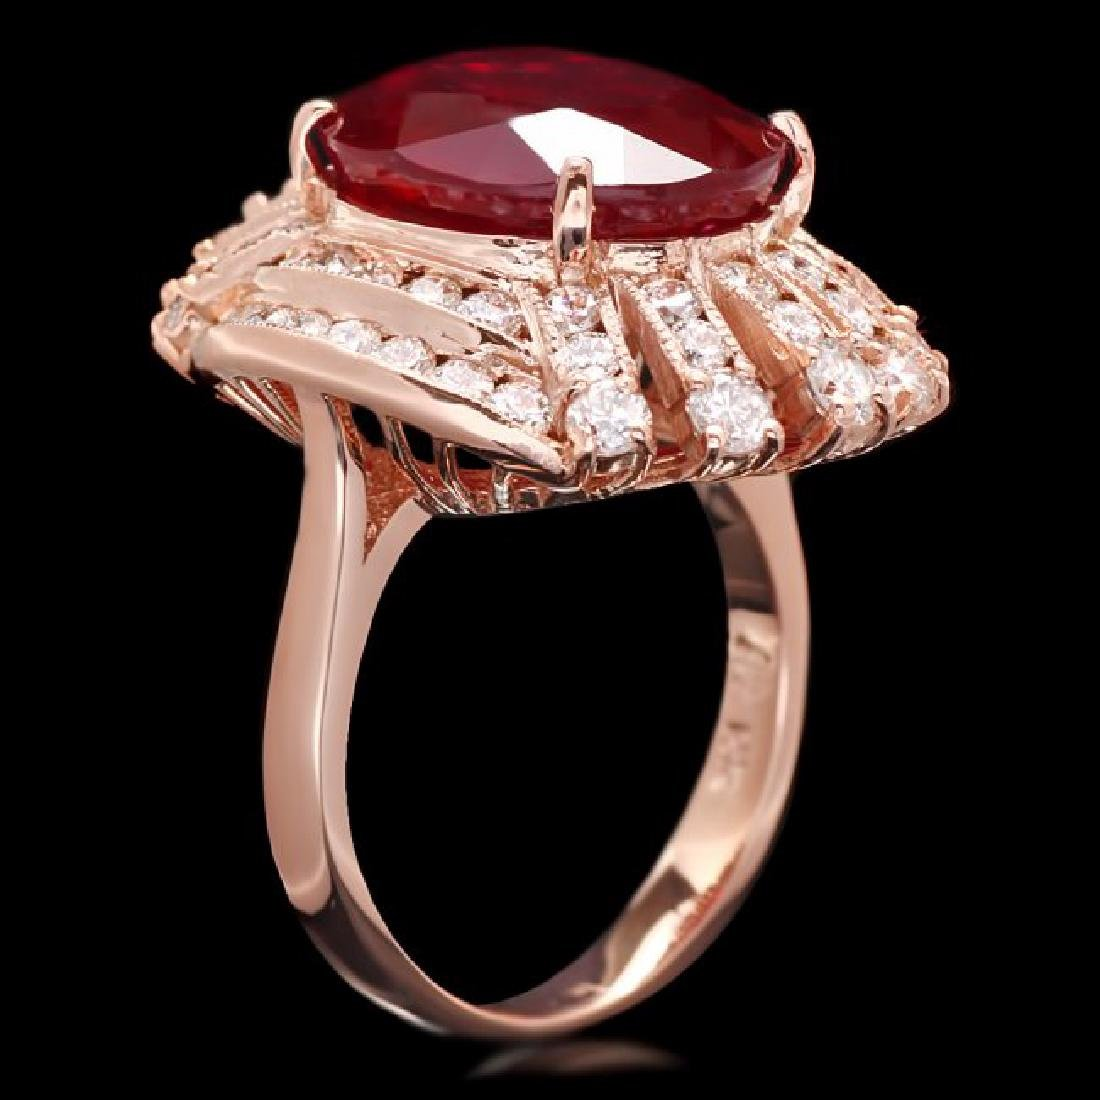 14k Rose Gold 11.80ct Ruby 1.80ct Diamond Ring - 3